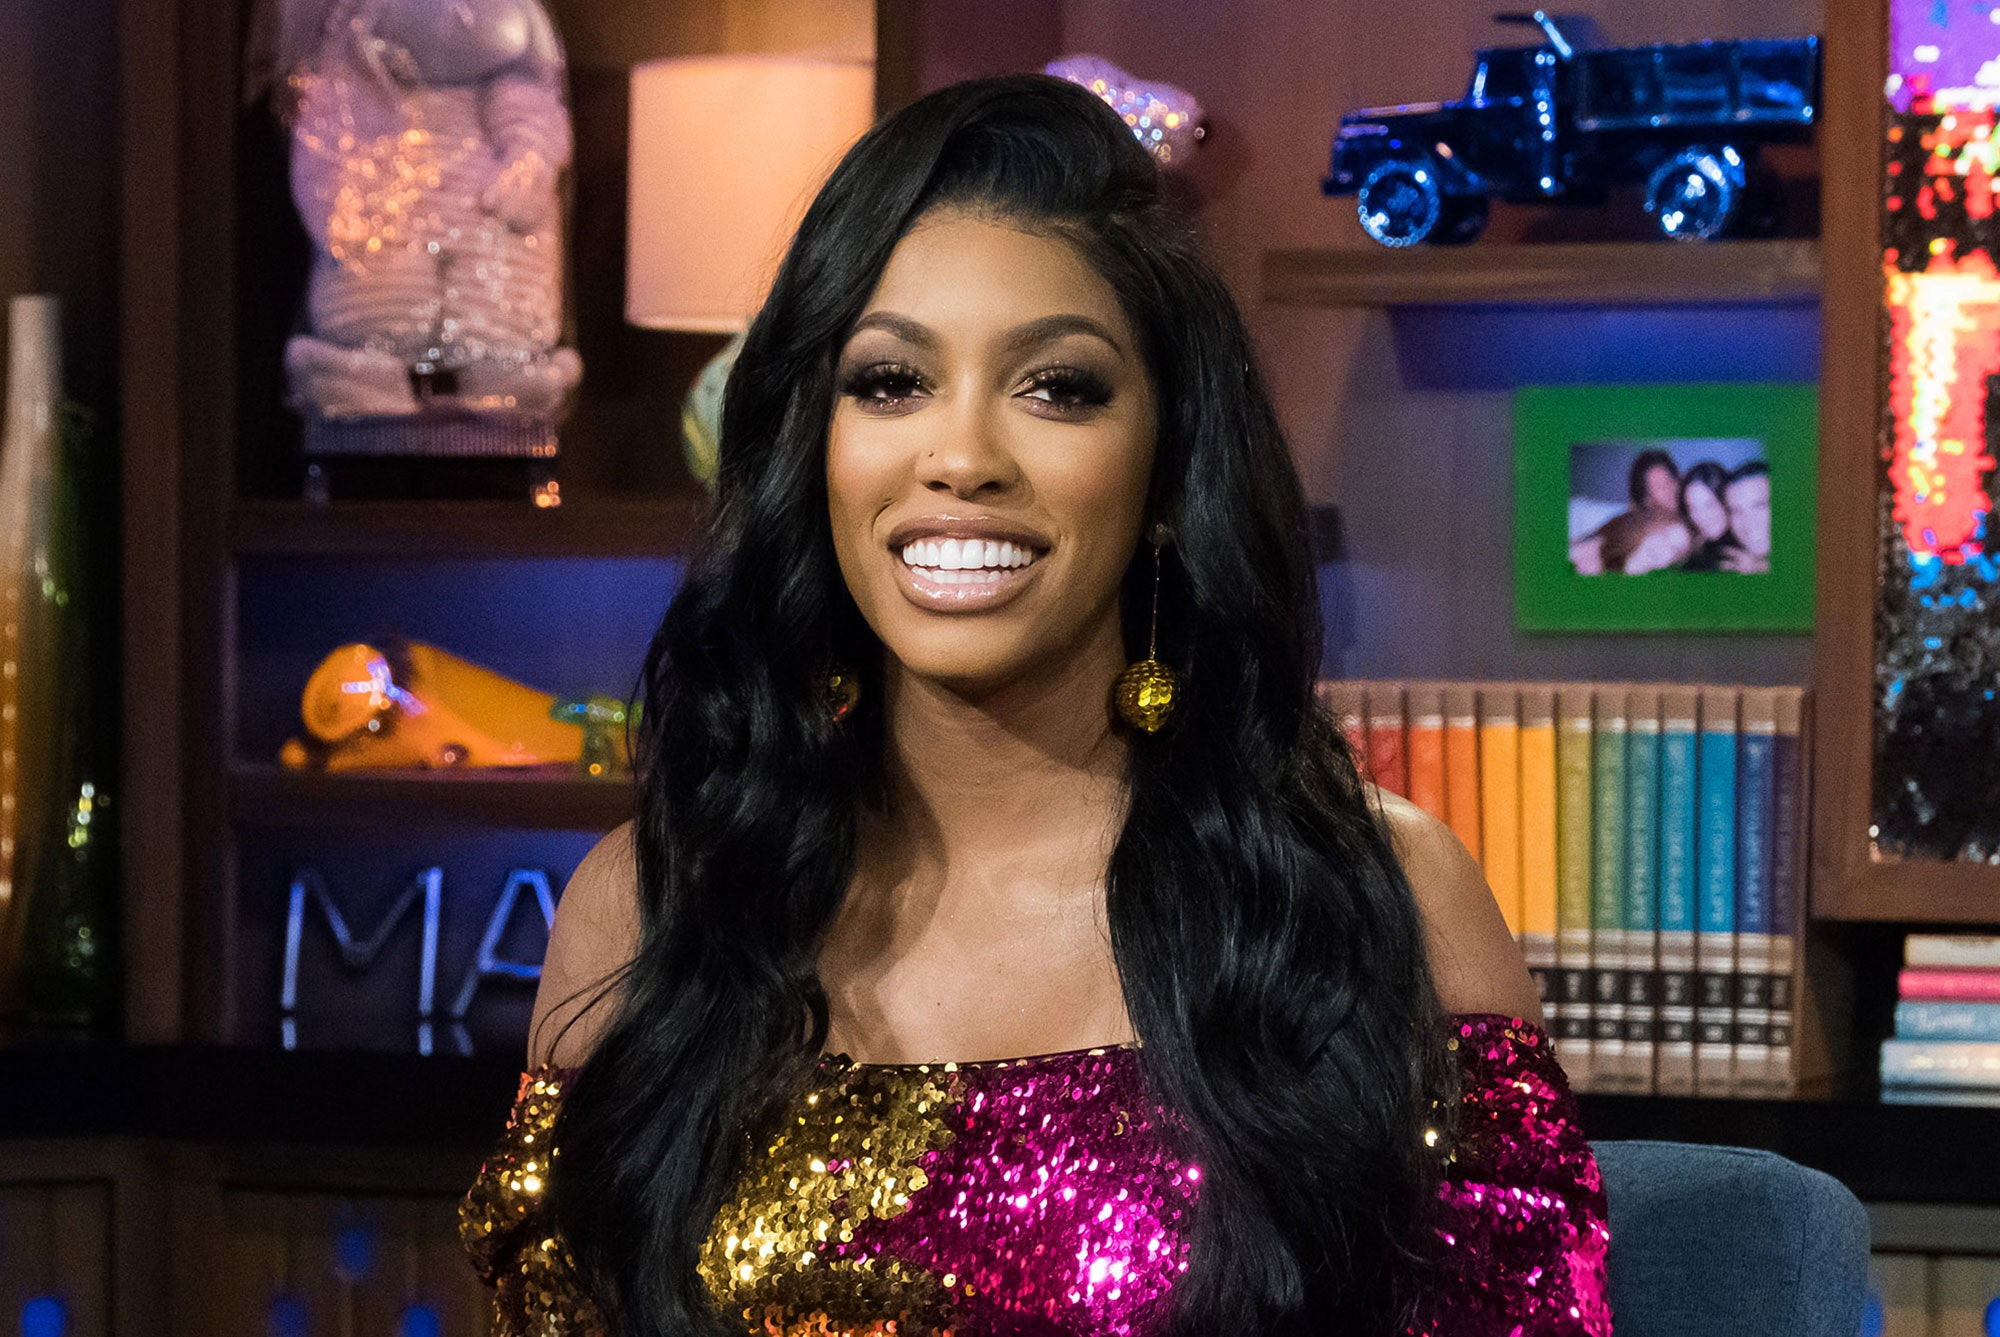 porsha-williams-latest-photo-featuring-pila-jhena-has-fans-in-awe-see-the-girls-classy-outfit-here